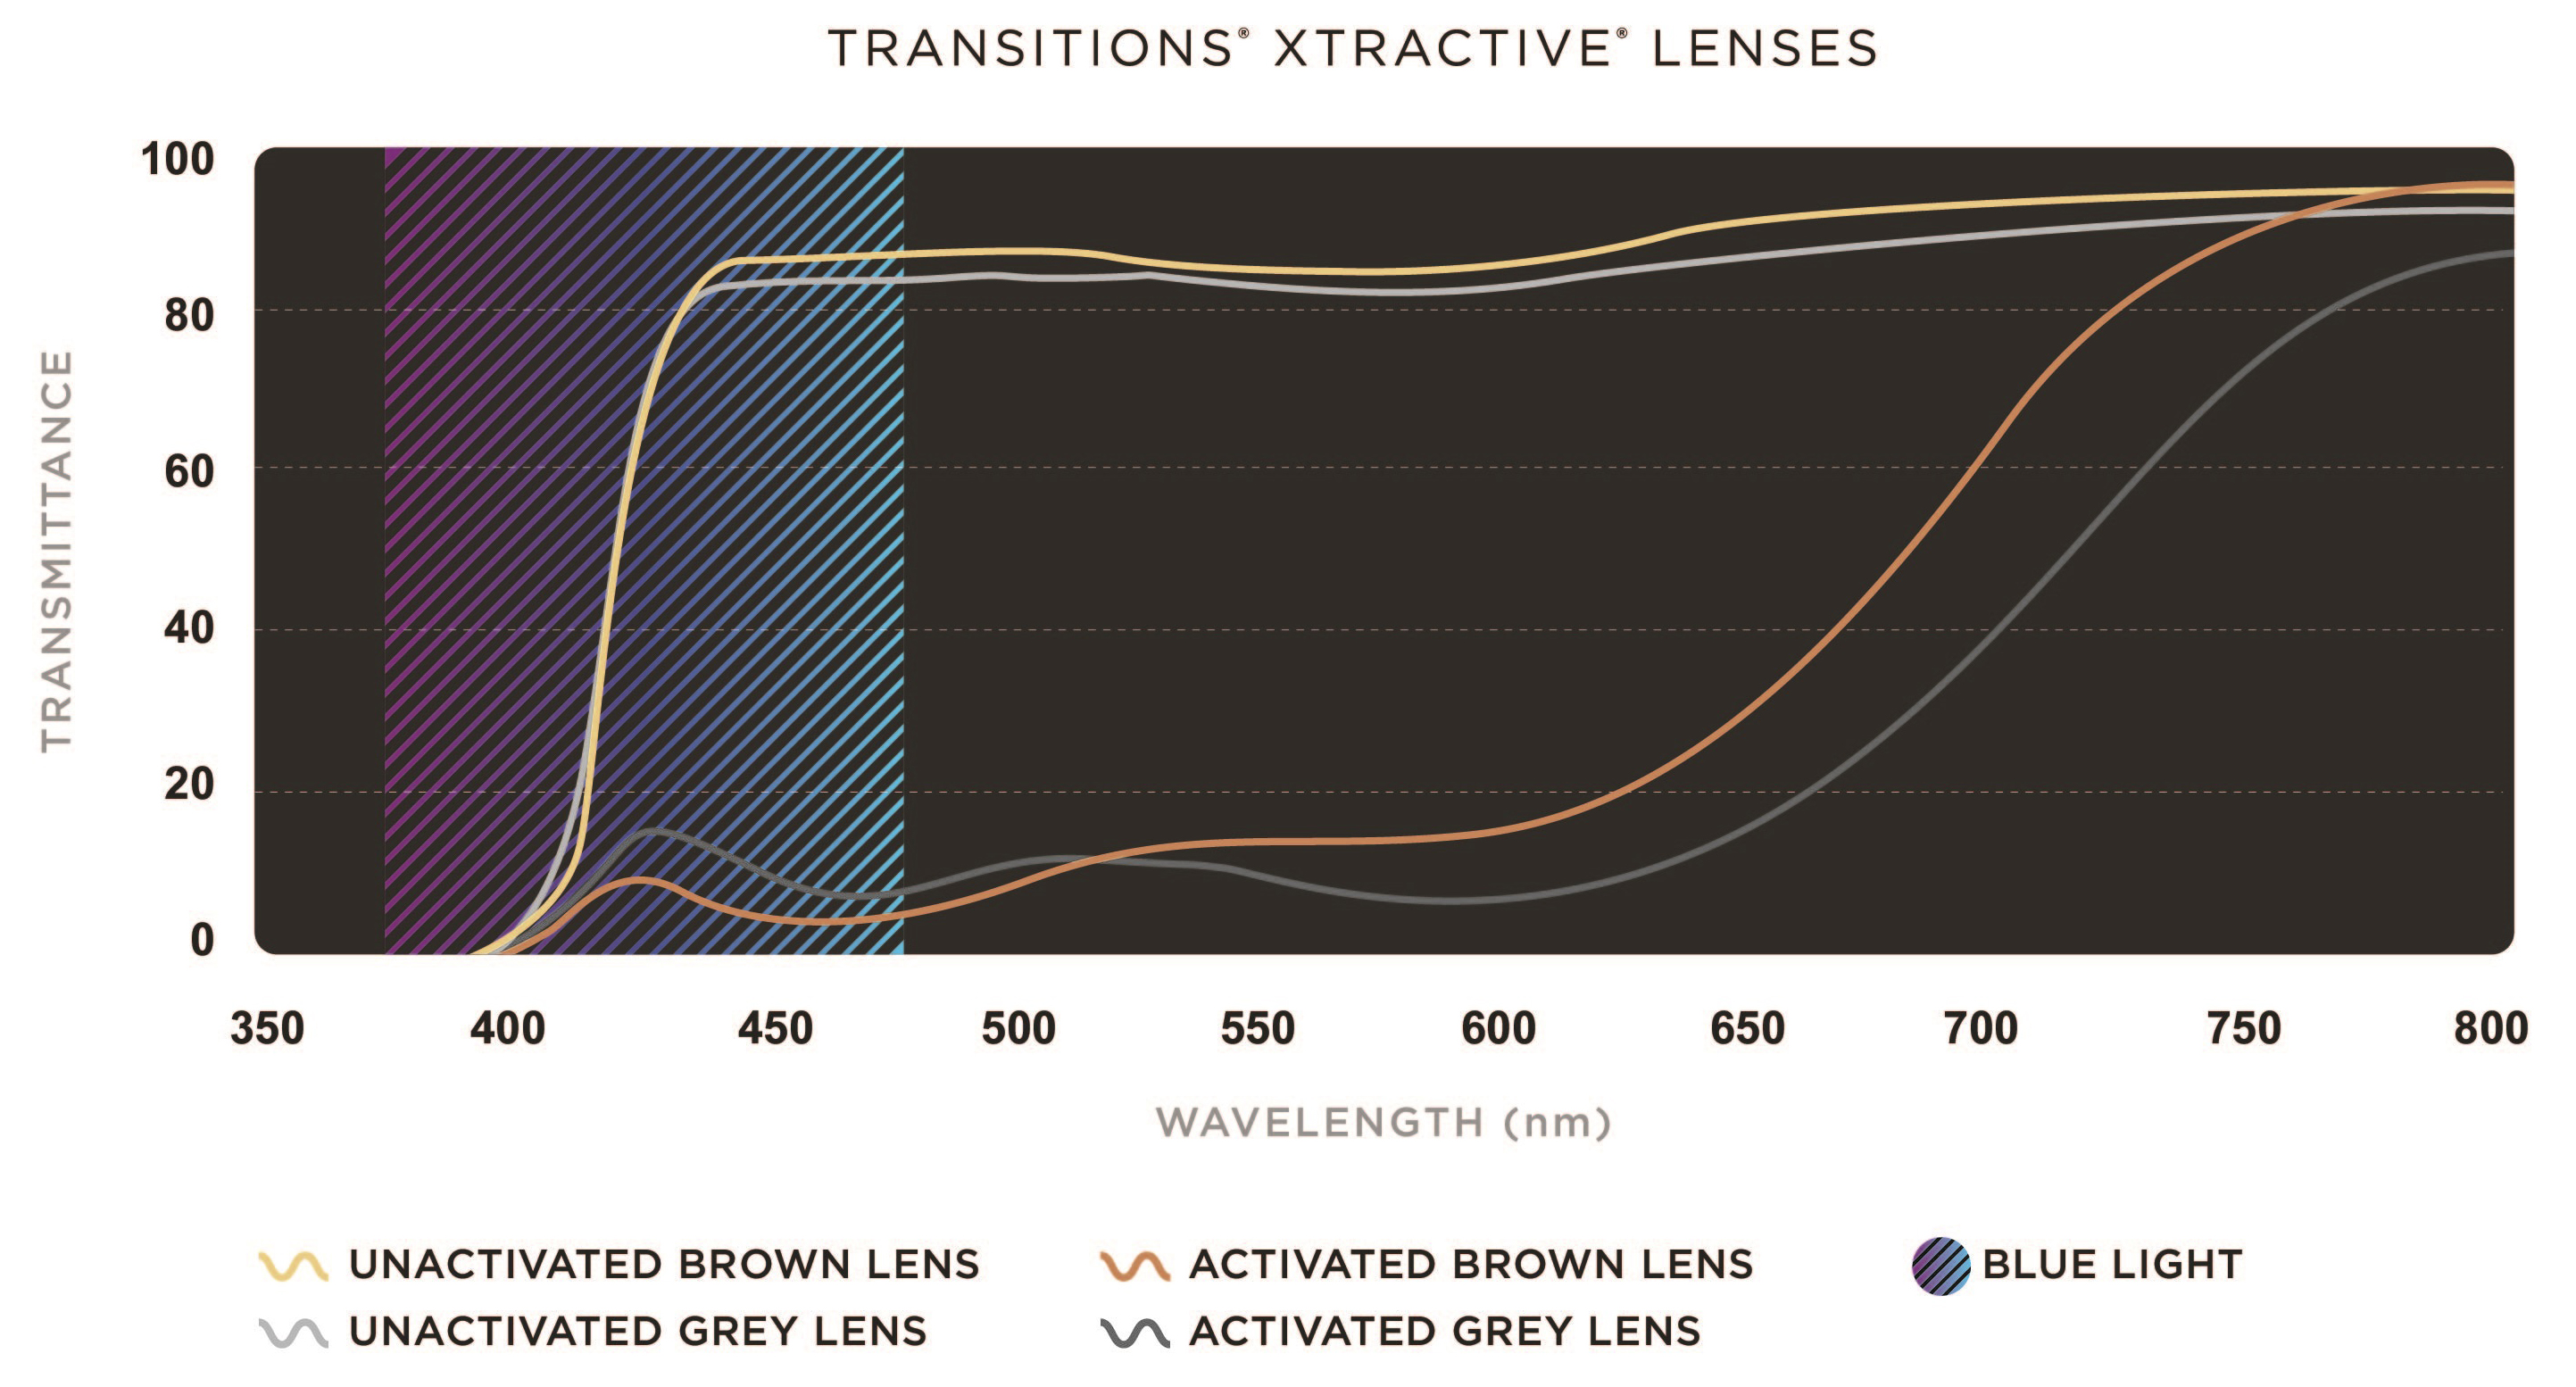 Overlay of un-activated and activated spectra of Transitions<sup>®</sup> Signature™ grey and brown lenses [A] and Transitions<sup>®</sup> XTRActive<sup>®</sup> grey and brown lenses [B] 2